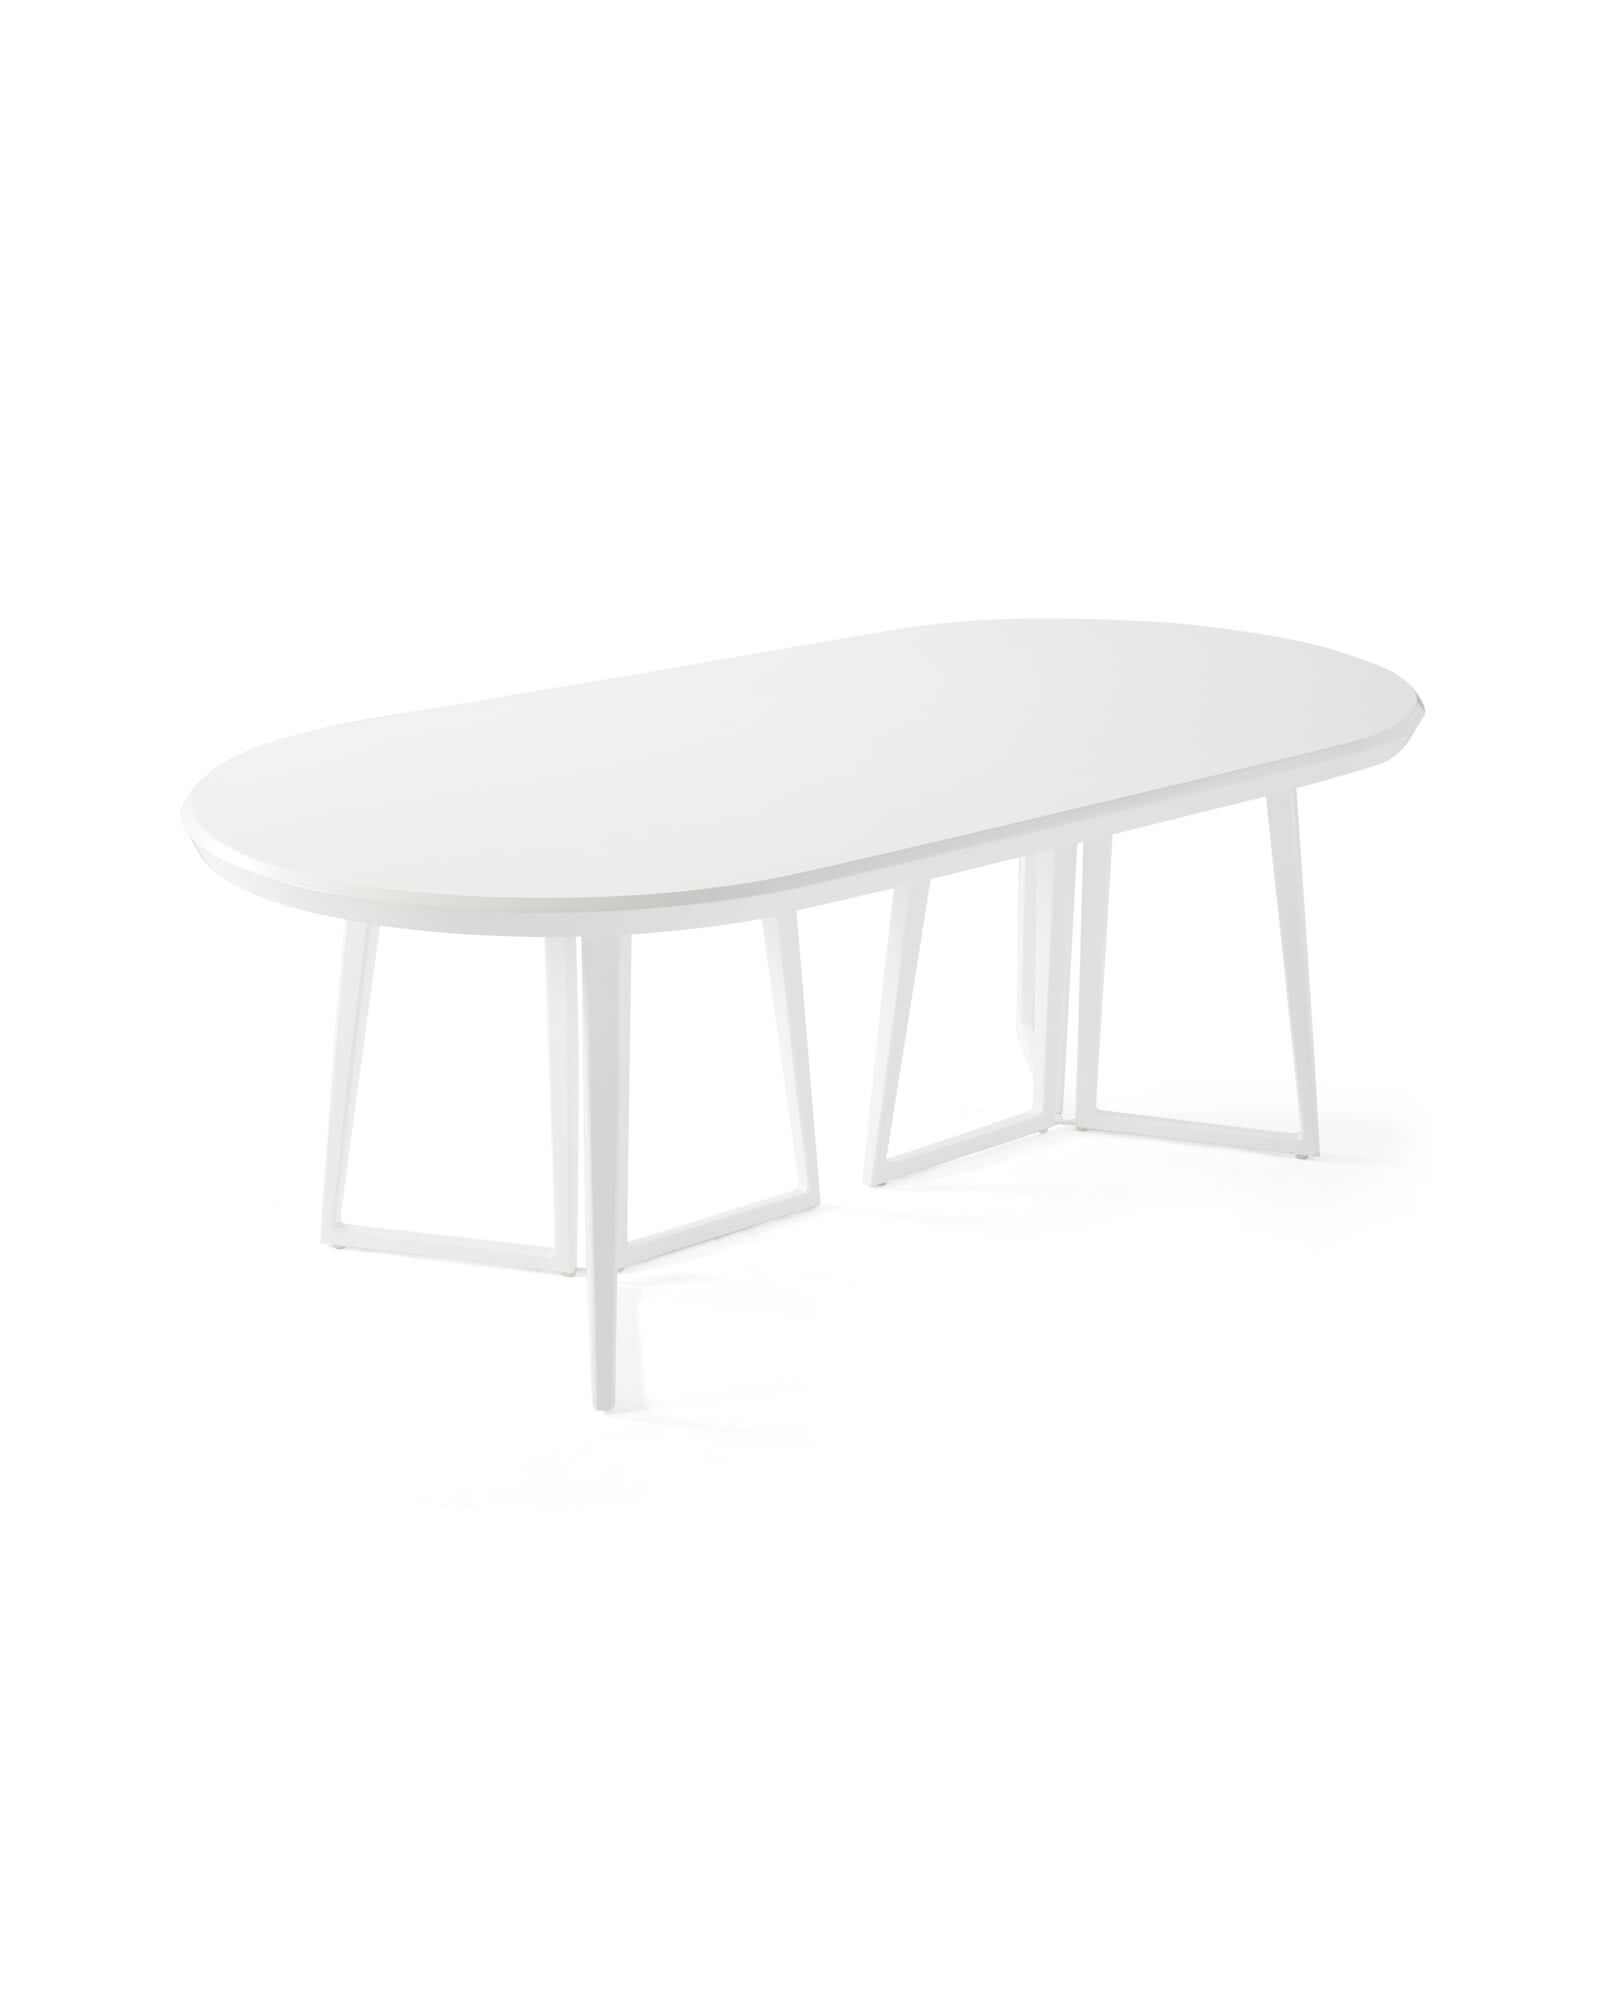 Downing Oval Dining Table